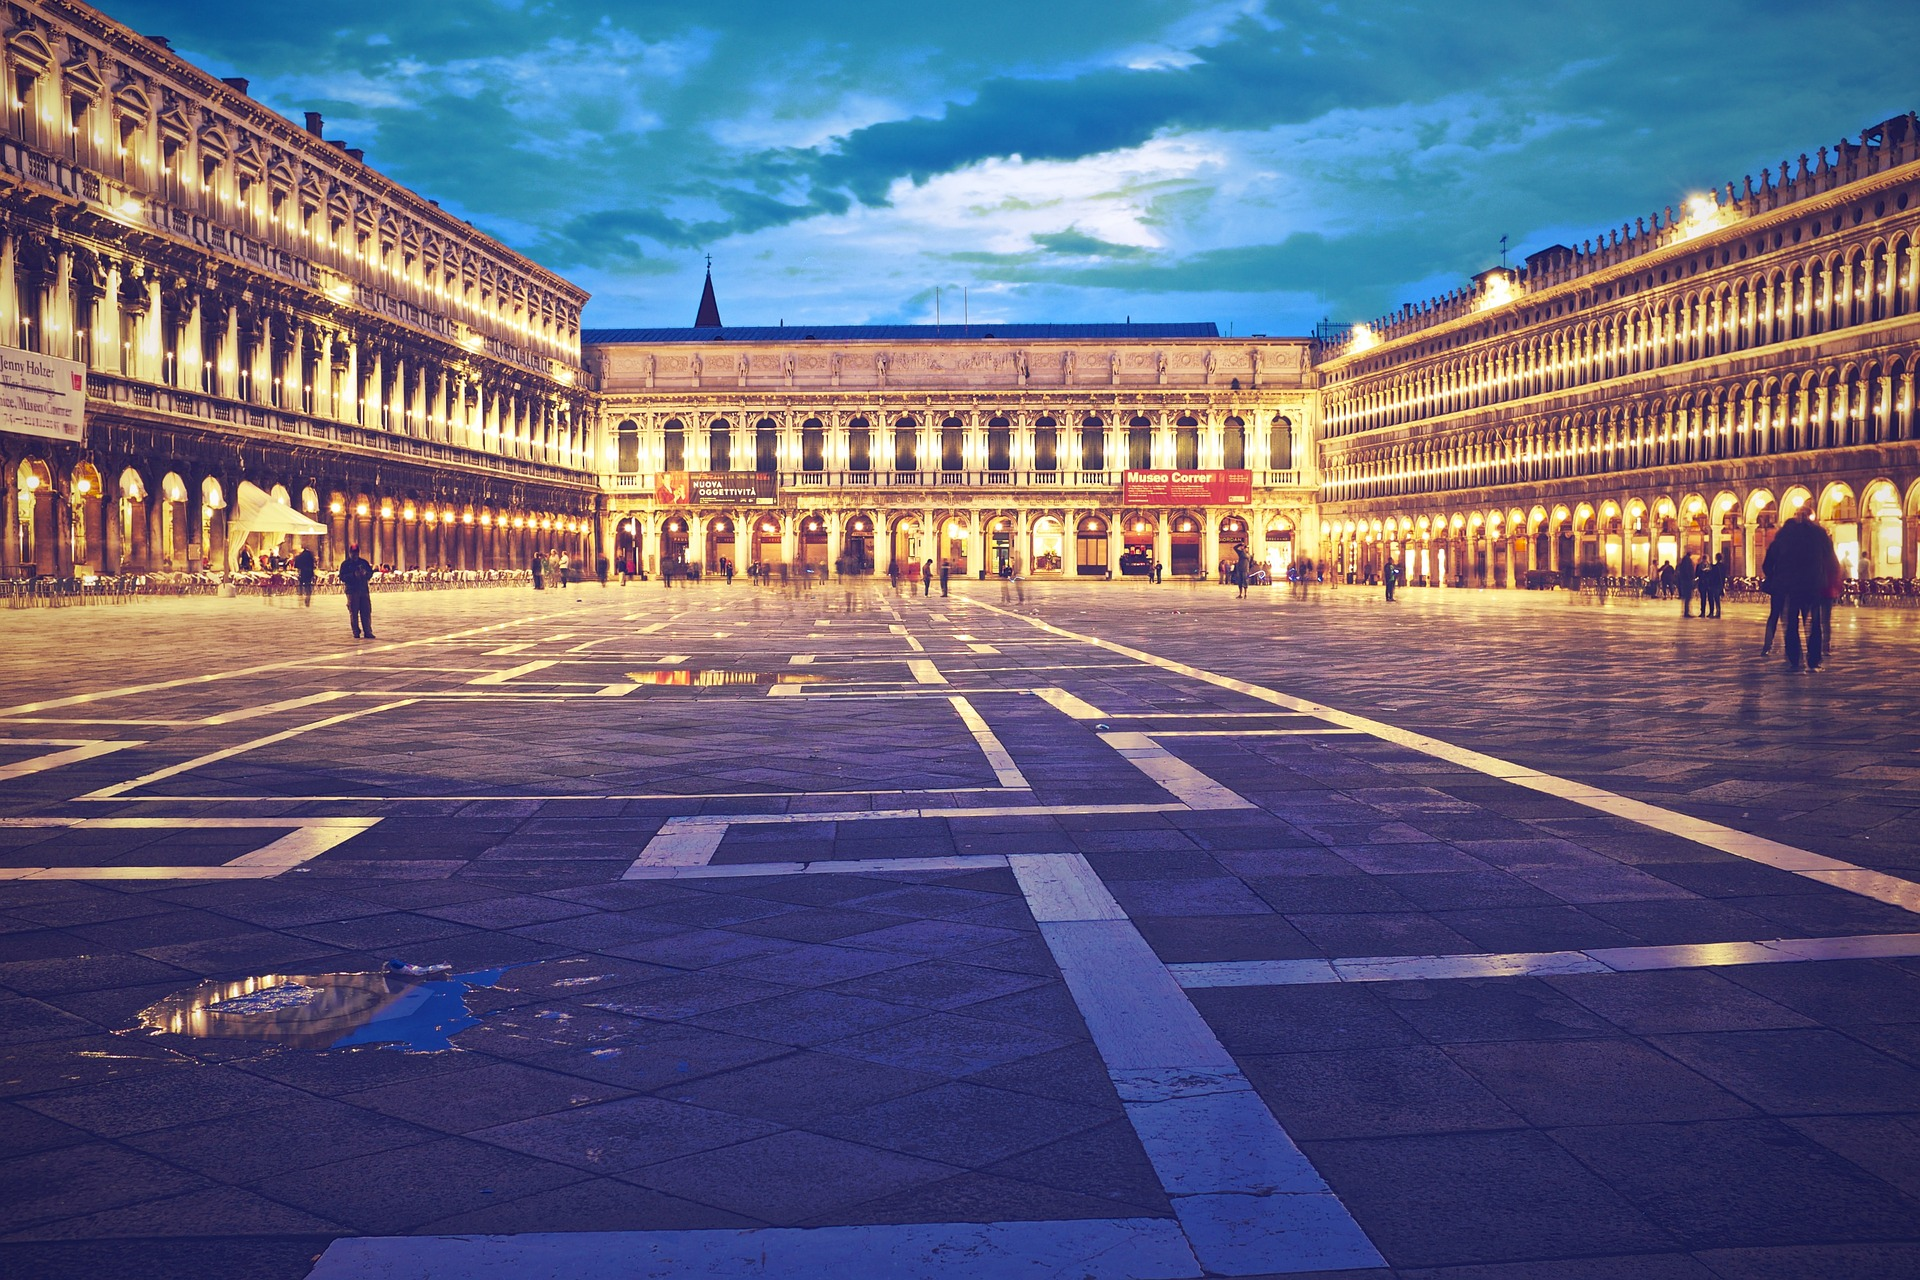 A large public square with patterned paving and surrounded by grand buildings fronted by columns and lit up against the early evening sky